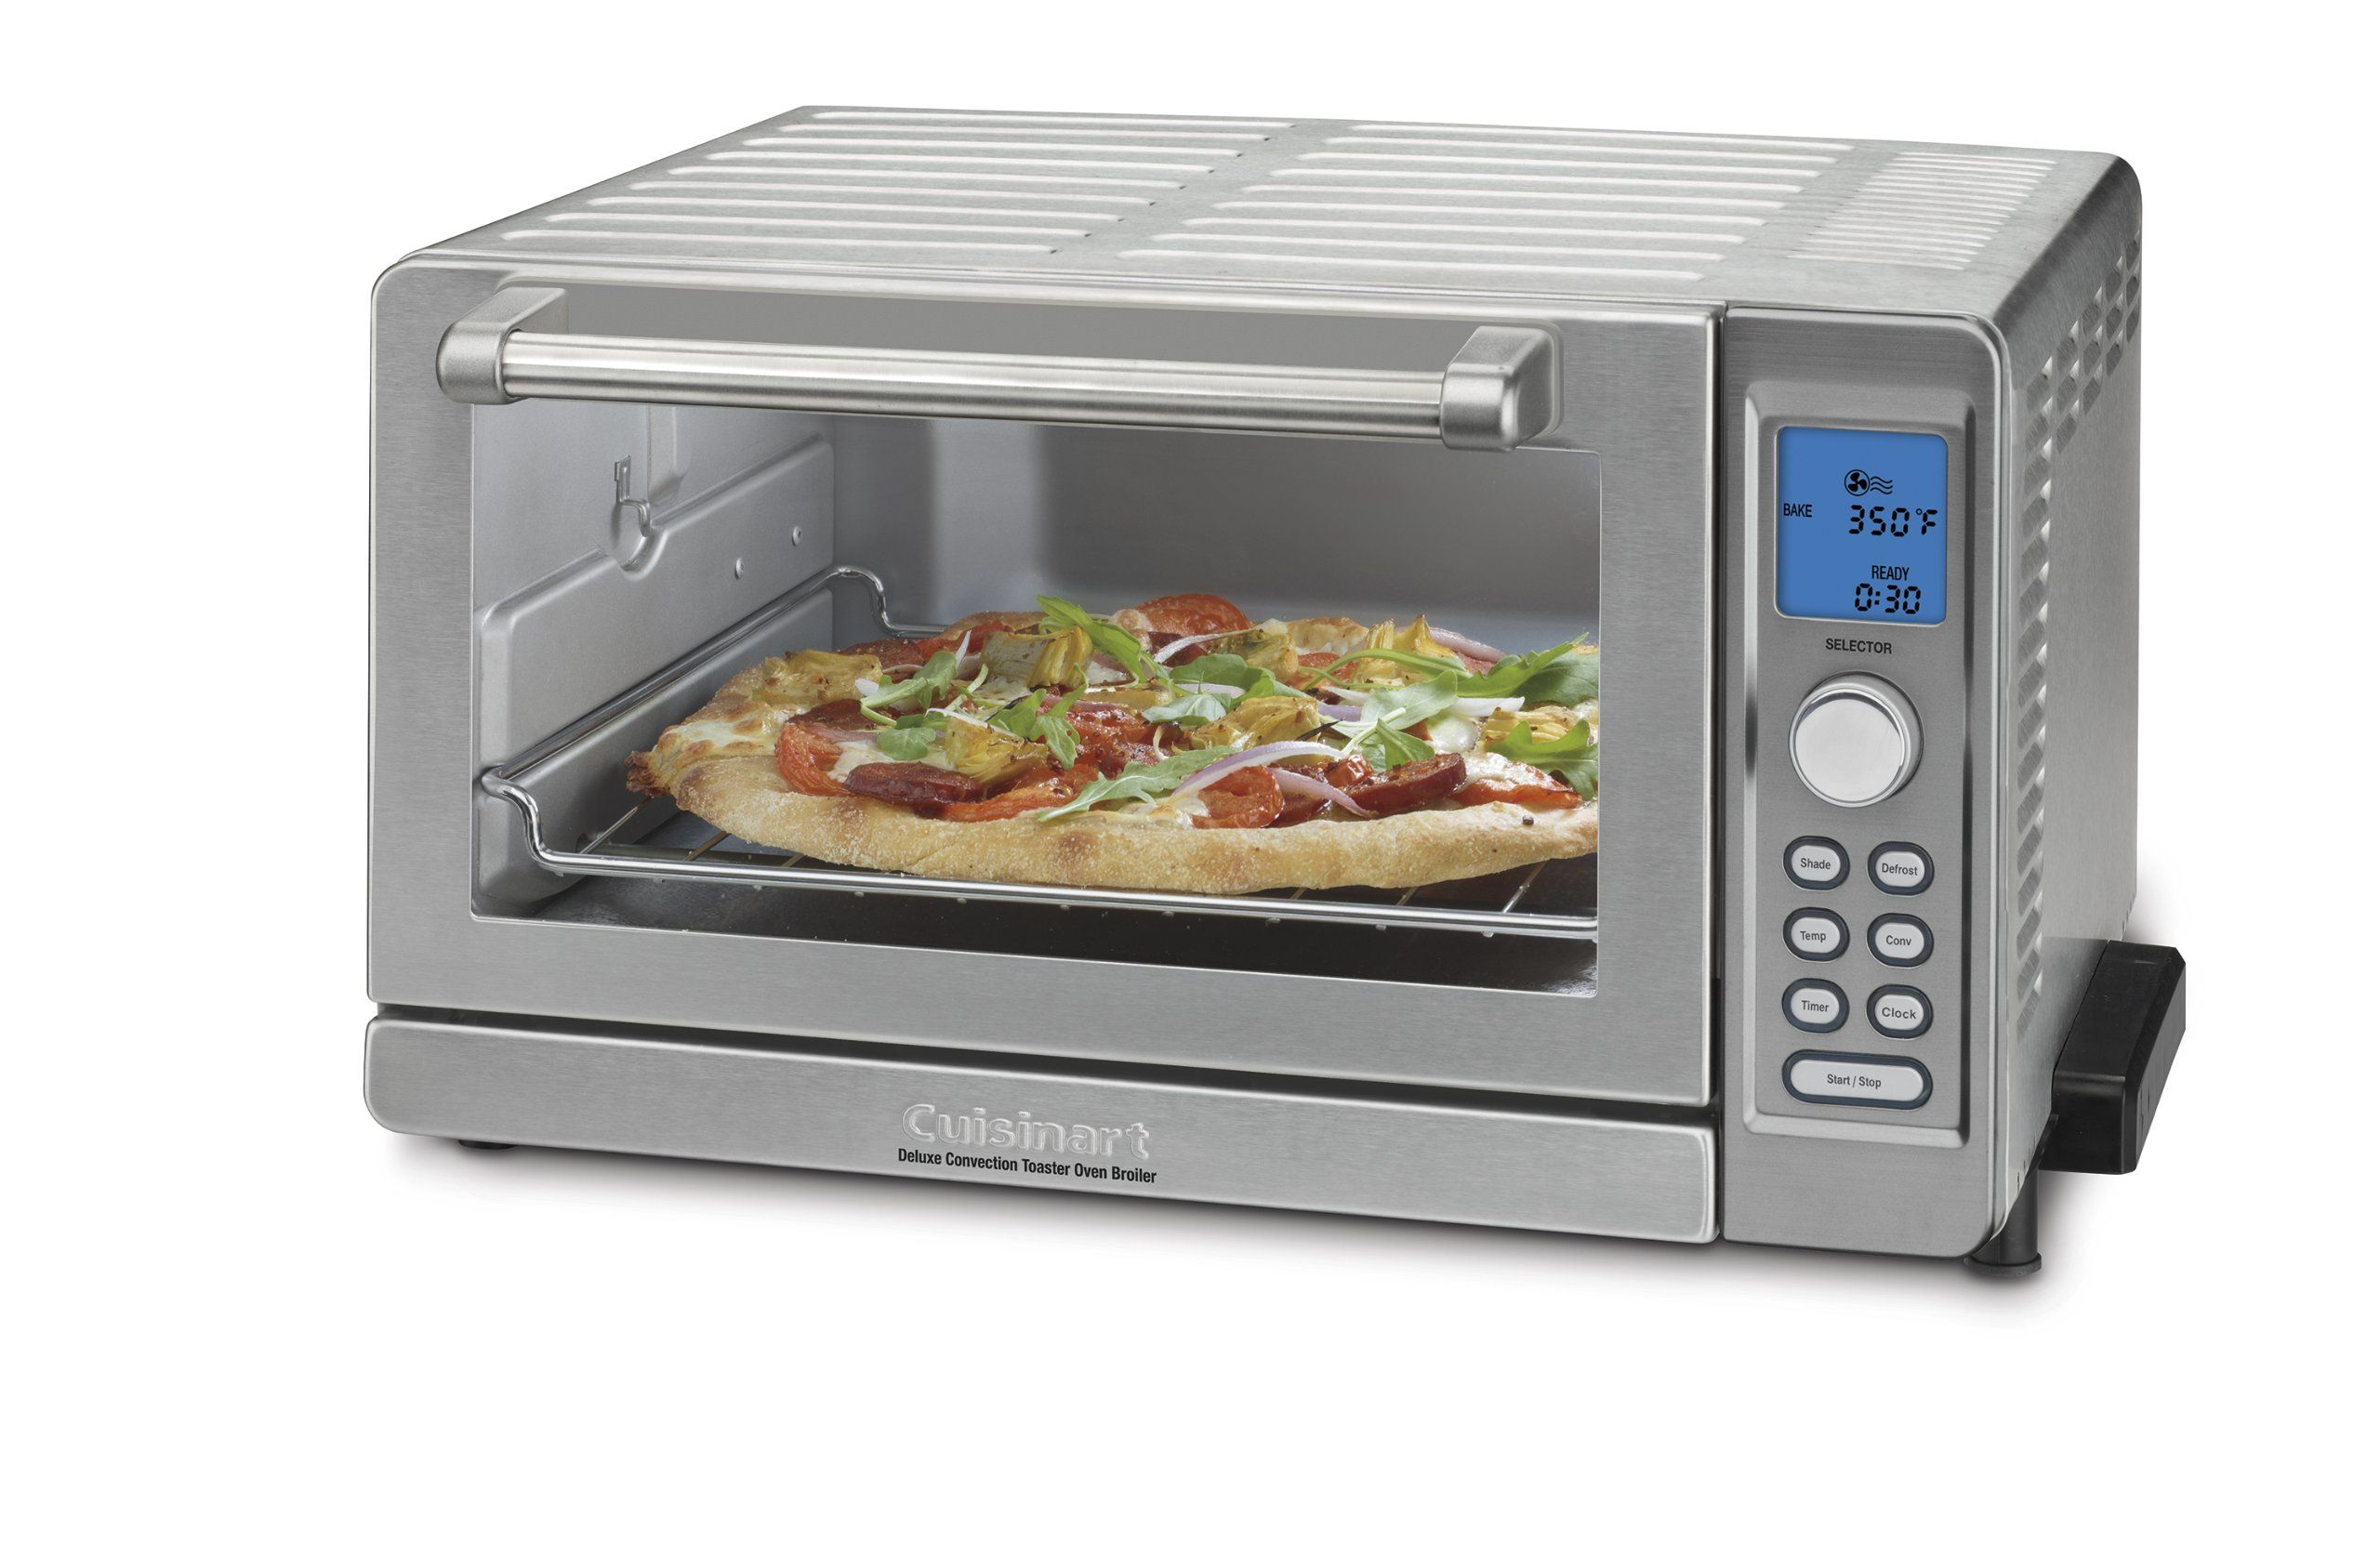 includes reviews decker slice wide extra black bake ovens rated toaster countertop oven com in customer pcr best convection helpful amazon